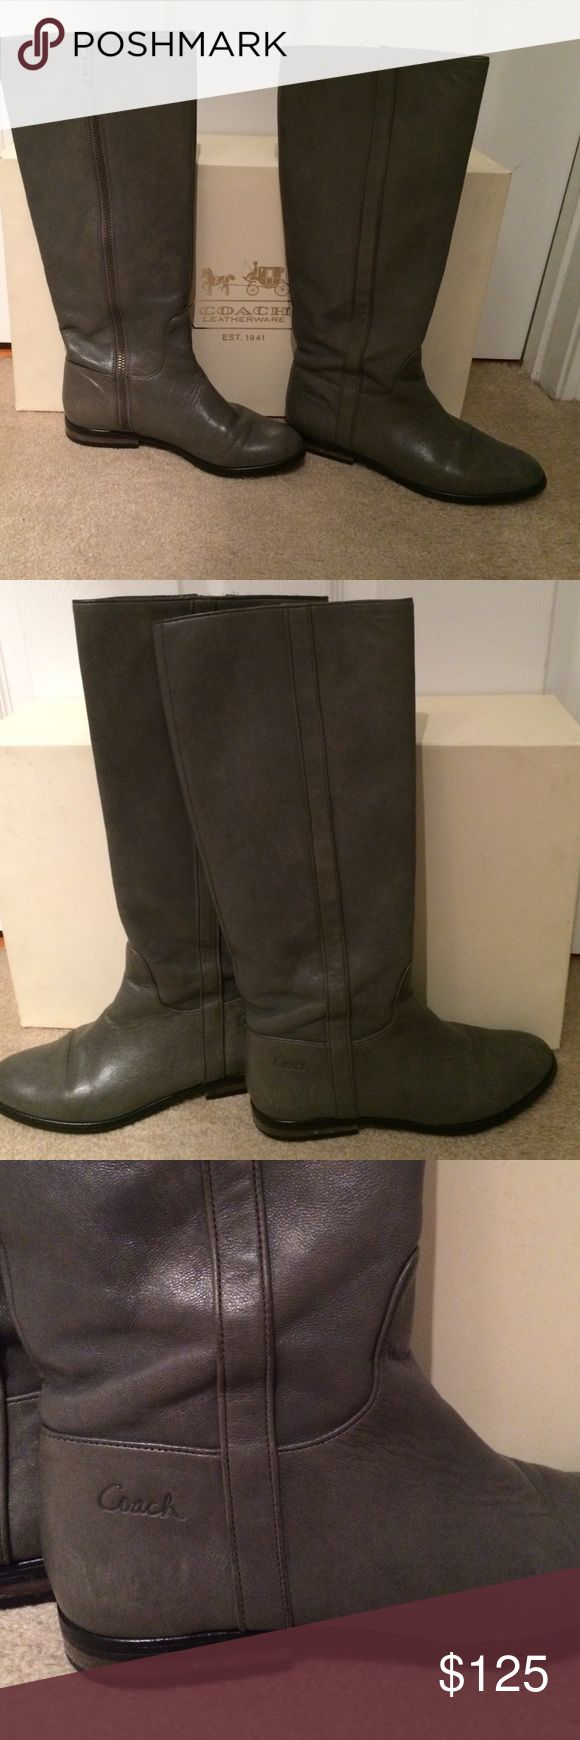 NEW FALL - Grey Coach Riding Boots Riding boots are in excellent condition and look great with leggings or jeans. Coach Shoes